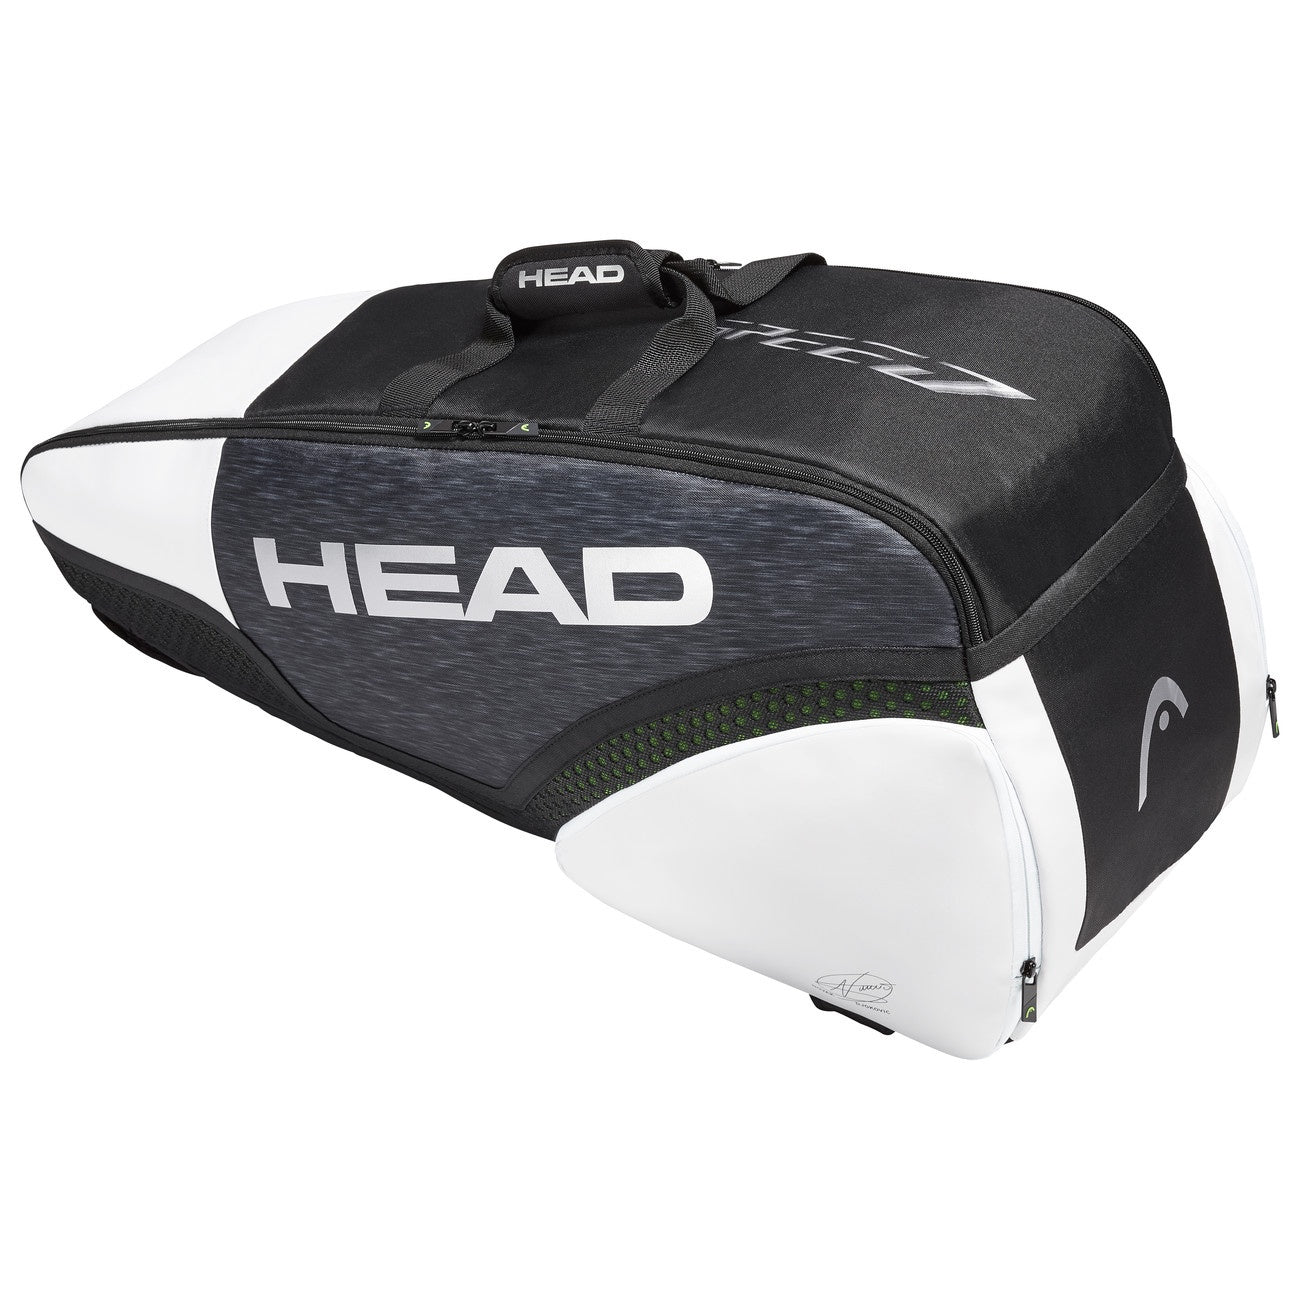 Head 2019 Djokovic 6R Combi